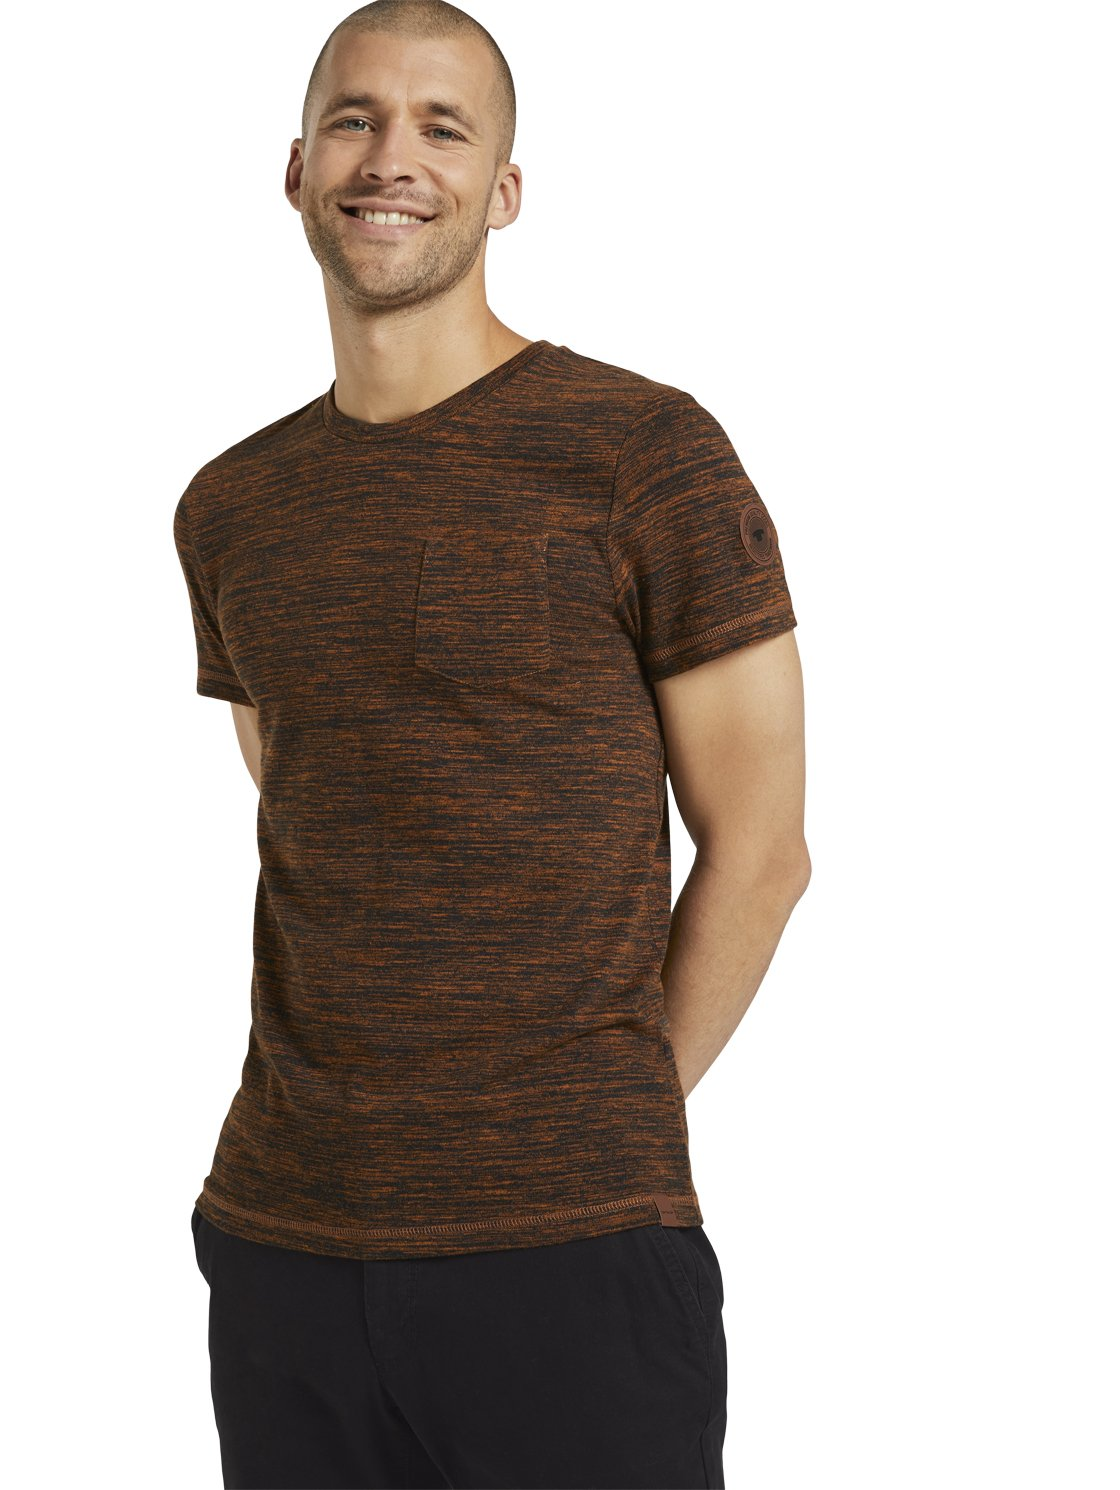 Tom Tailor men's t-shirt brown 1022220